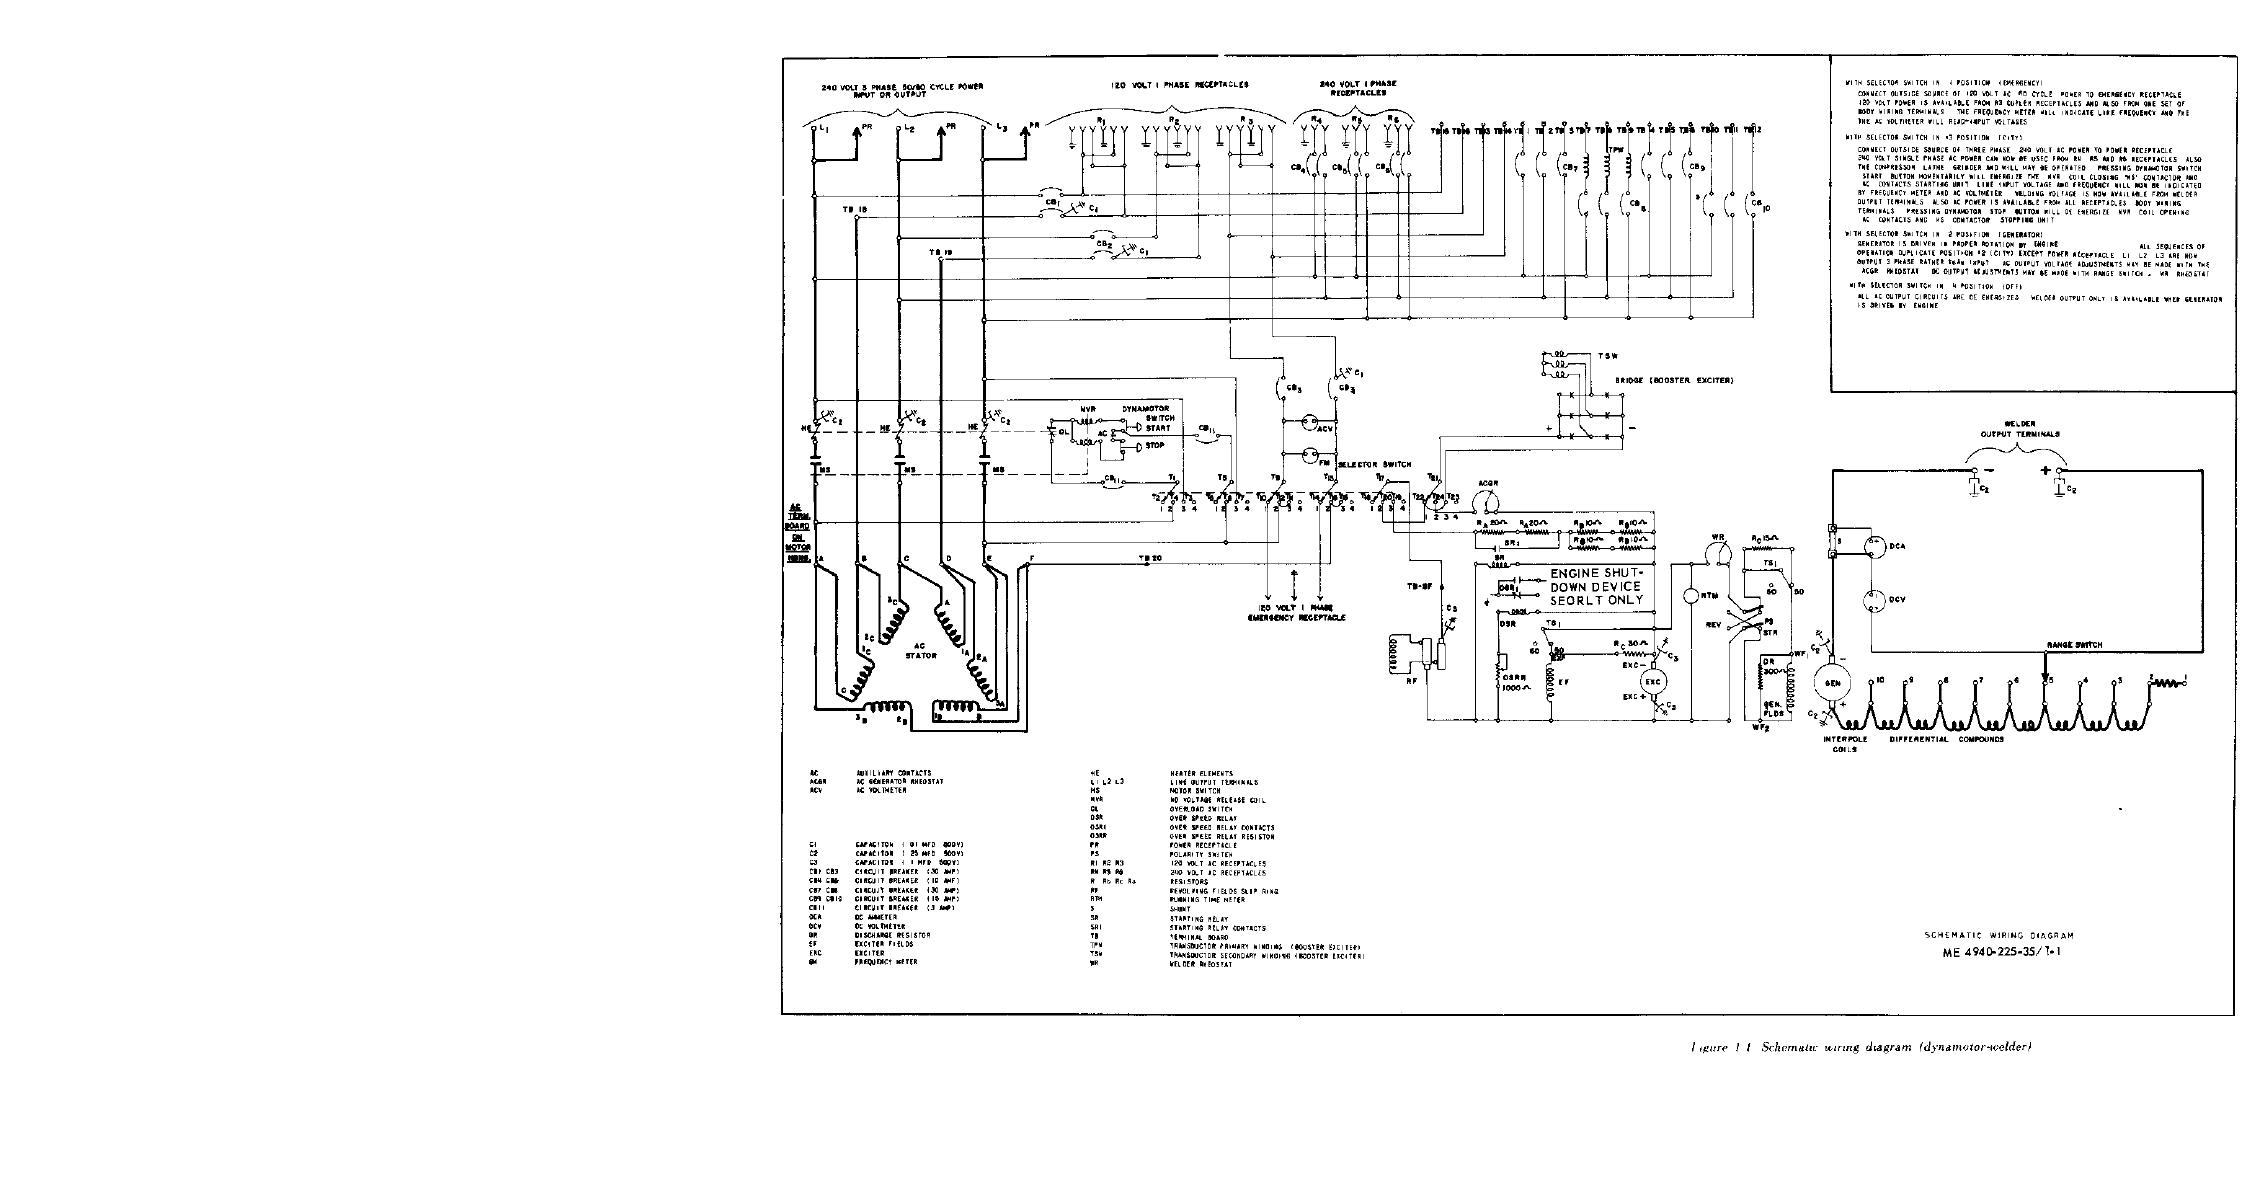 Figure 1-1. Schematic Wiring Diagram (dynamotor welder)